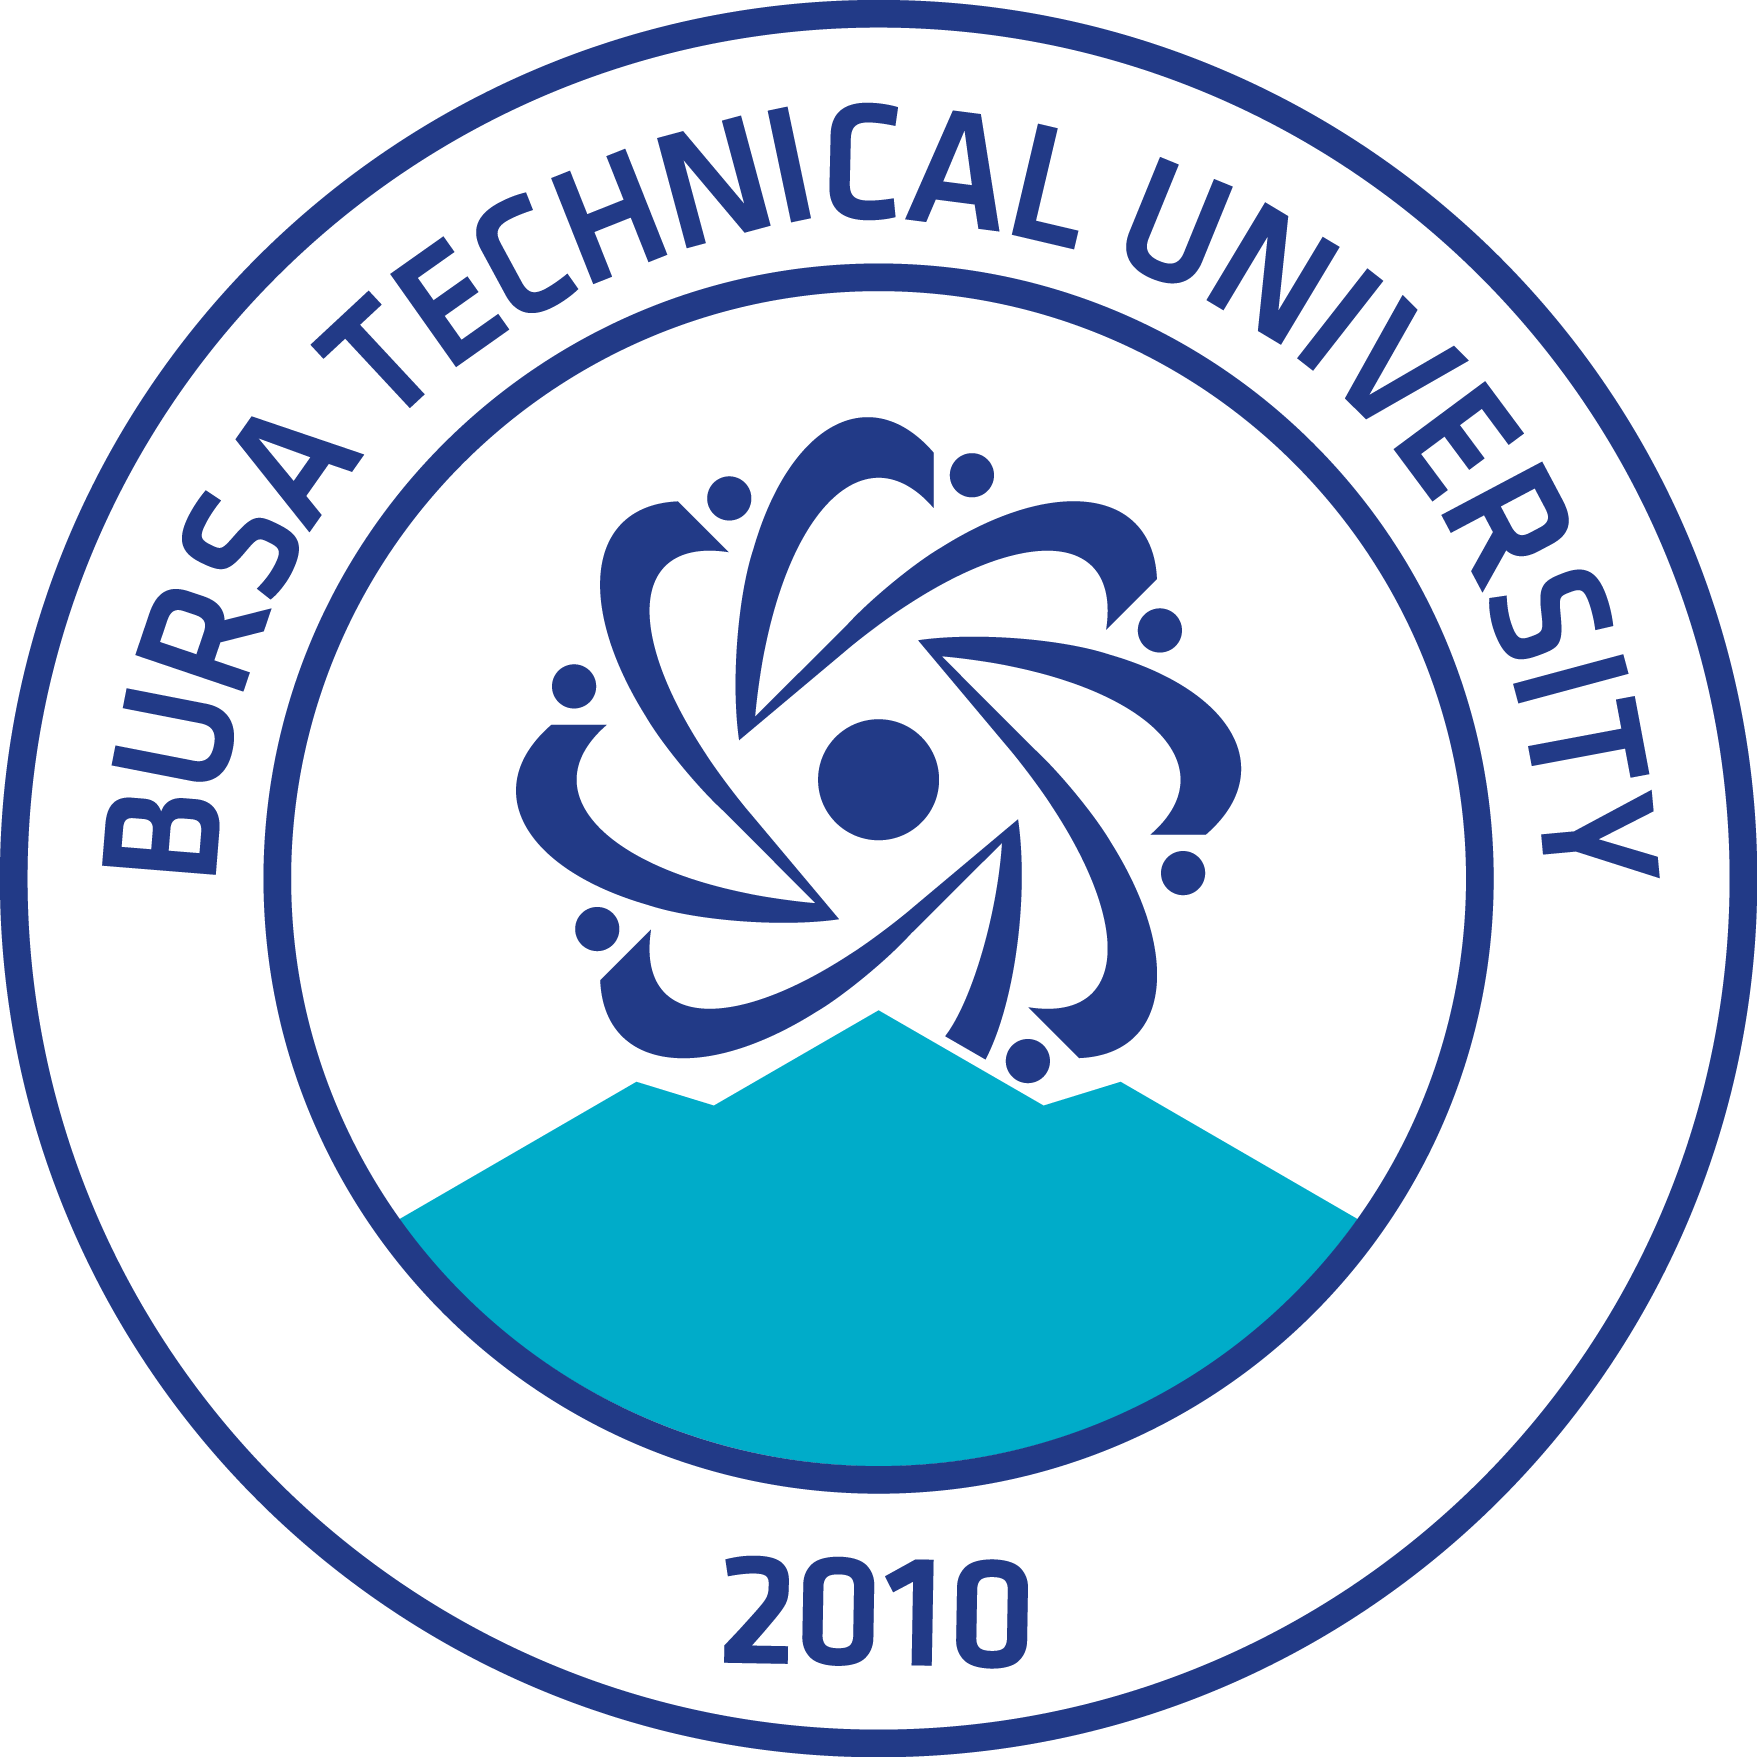 bursa technical university logo